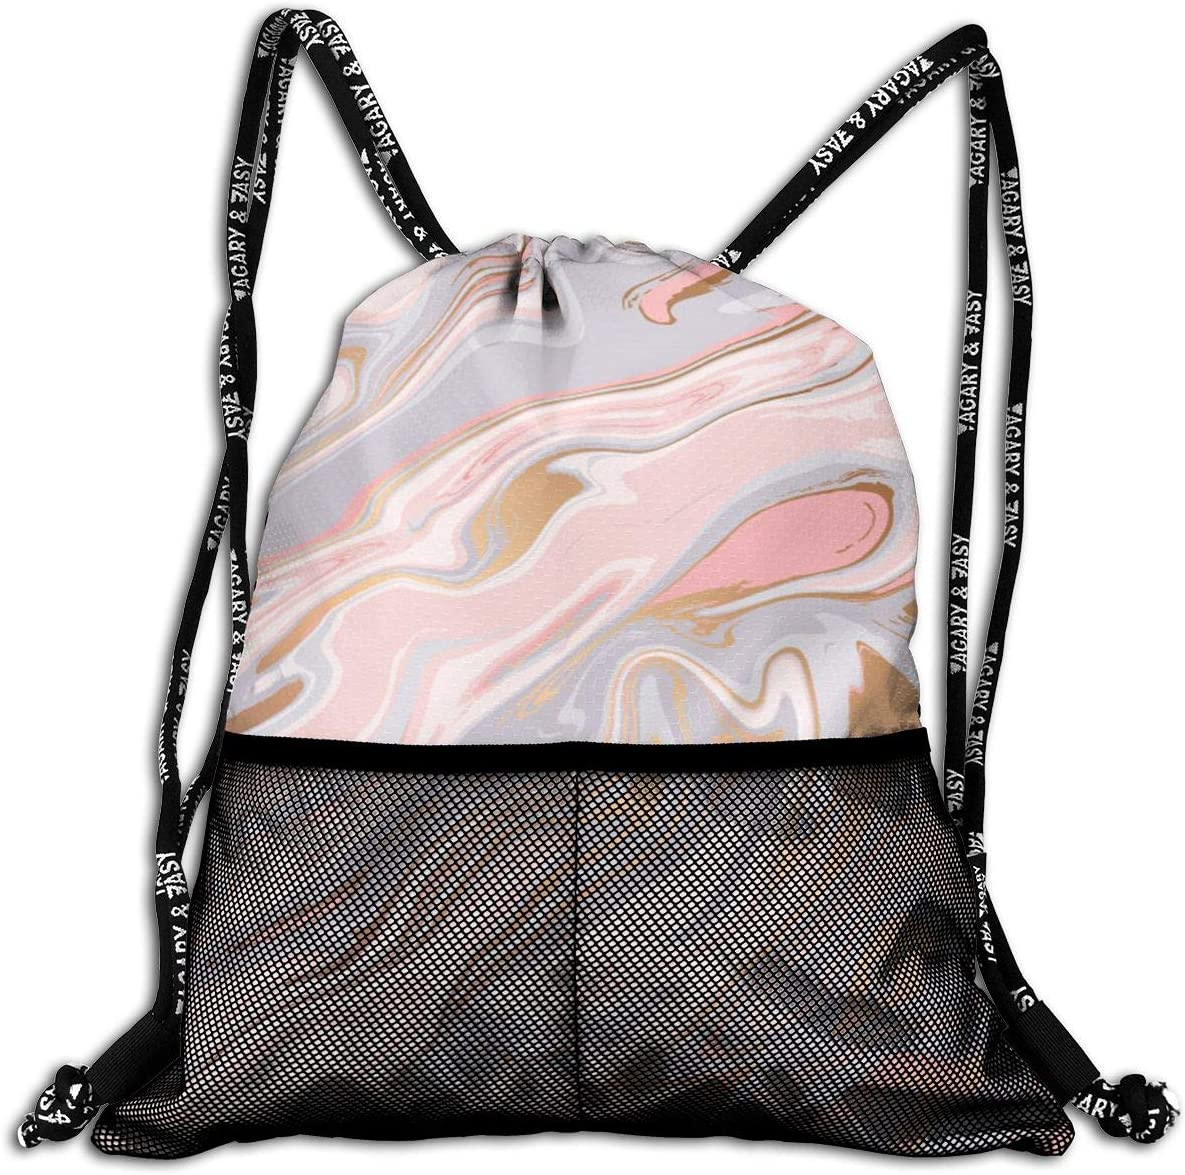 Yackpa Marble Texture Design Colorful Customized Drawstring Backpack Front Zipper Mesh Bag Unisex For Travel Fitness